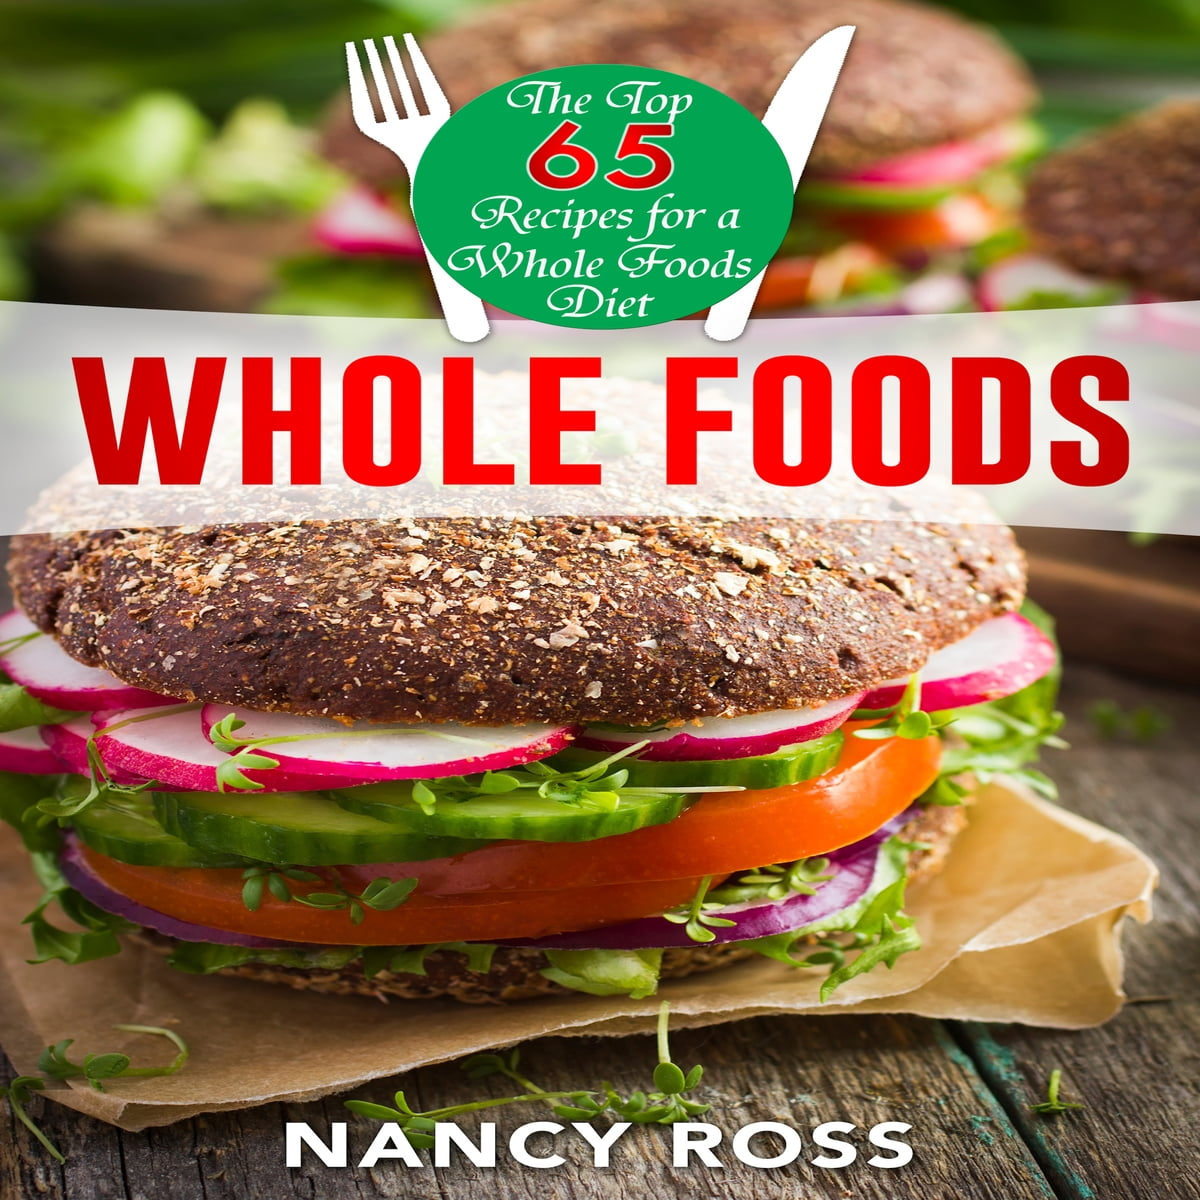 Whole food the top 65 recipes for a whole foods diet audiobook by whole food the top 65 recipes for a whole foods diet audiobook by nancy ross 9781518935695 rakuten kobo forumfinder